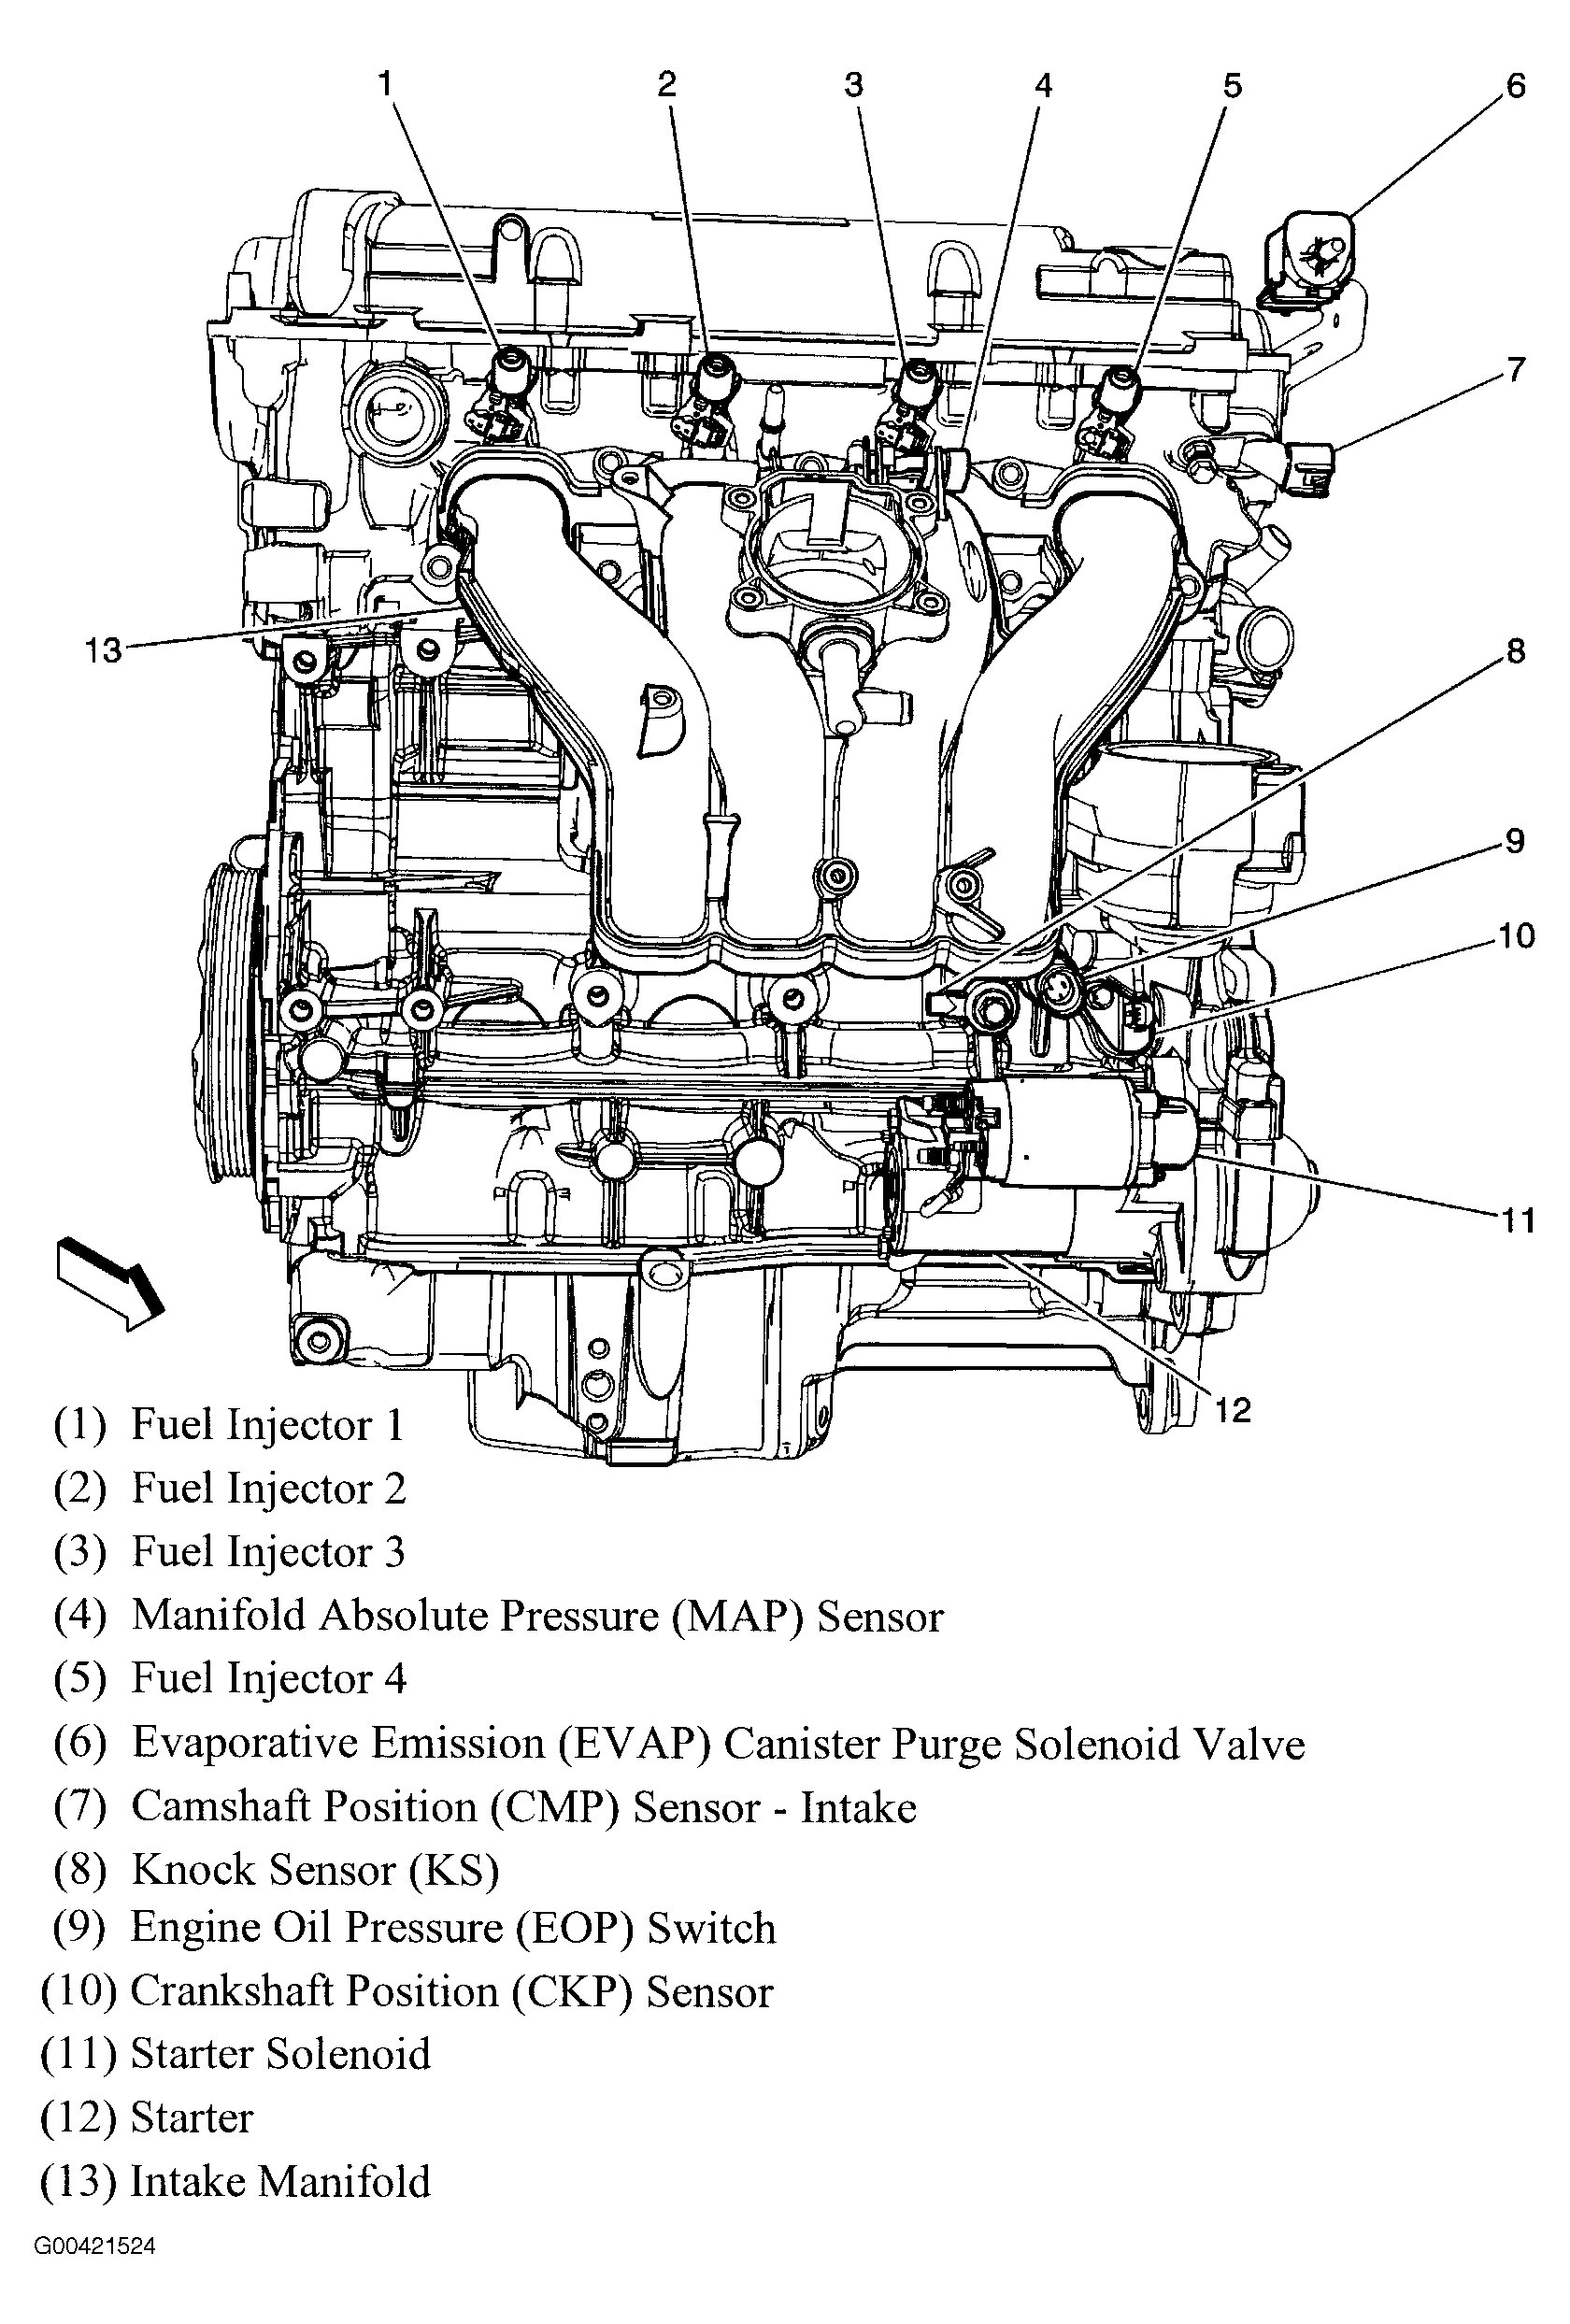 Gm 3 6 V6 Engine Diagram